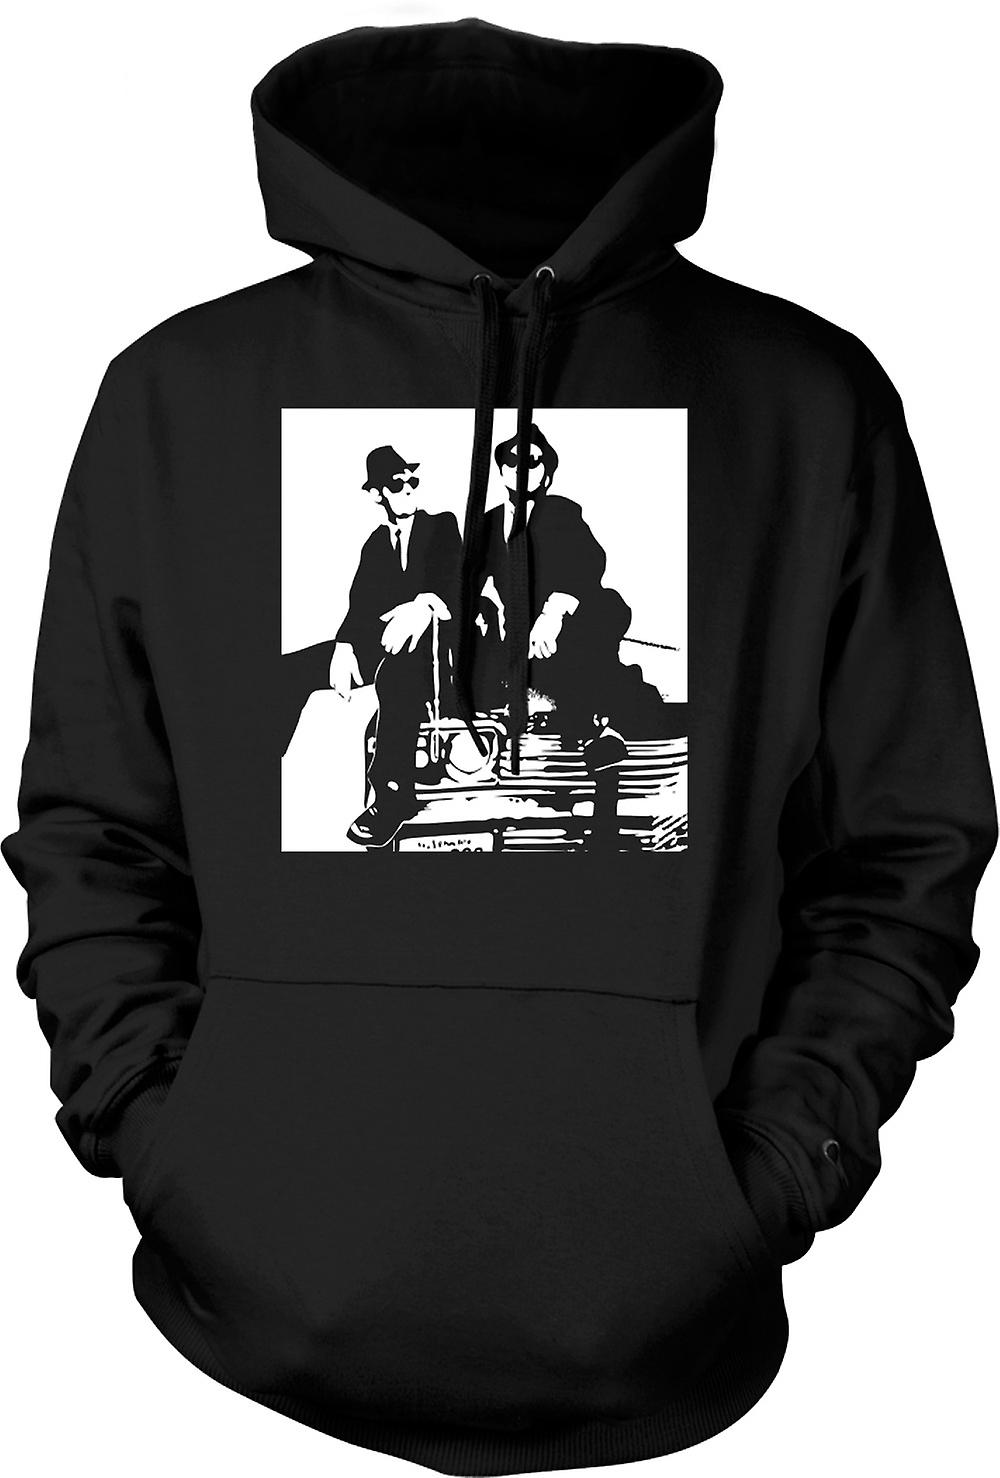 Kids Hoodie - Blues Brothers - Pop Art